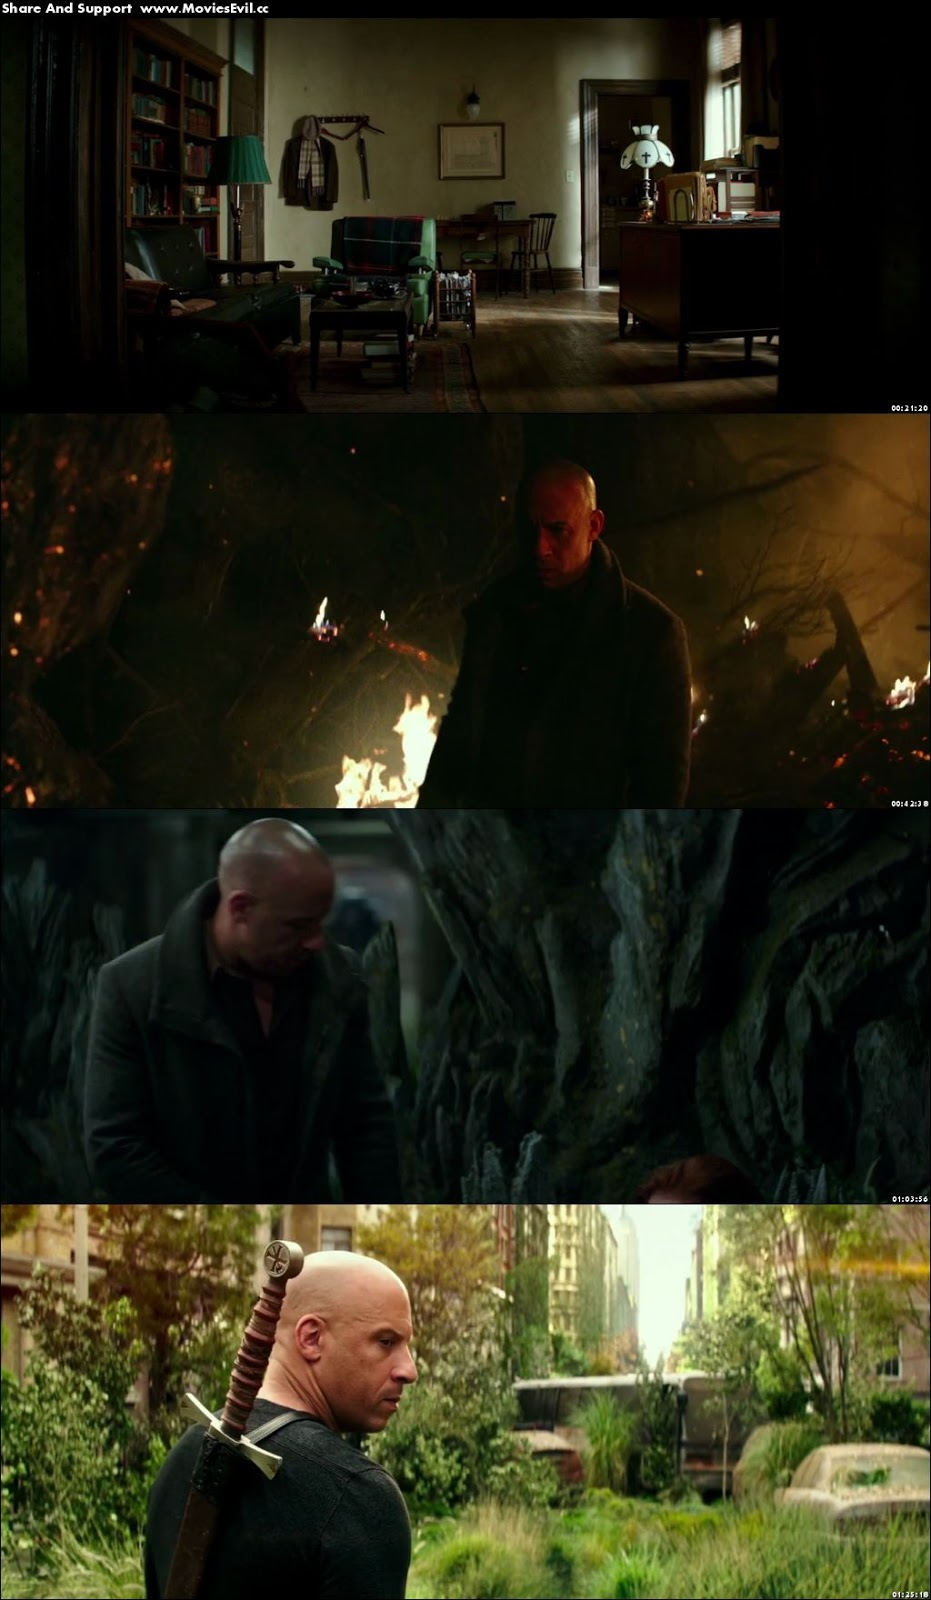 The Last Witch Hunter 2015 English 720p BluRay x264 Free Download,The Last Witch Hunter 2015 watch online hindi dubbed,The Last Witch Hunter 2015 720p hindi dubbed download,The Last Witch Hunter 2015 dual audio download,The Last Witch Hunter 2015 torrent download,The Last Witch Hunter 2015 1080p BluRay download,The Last Witch Hunter 2015 movie free download,The Last Witch Hunter 2015 movie download